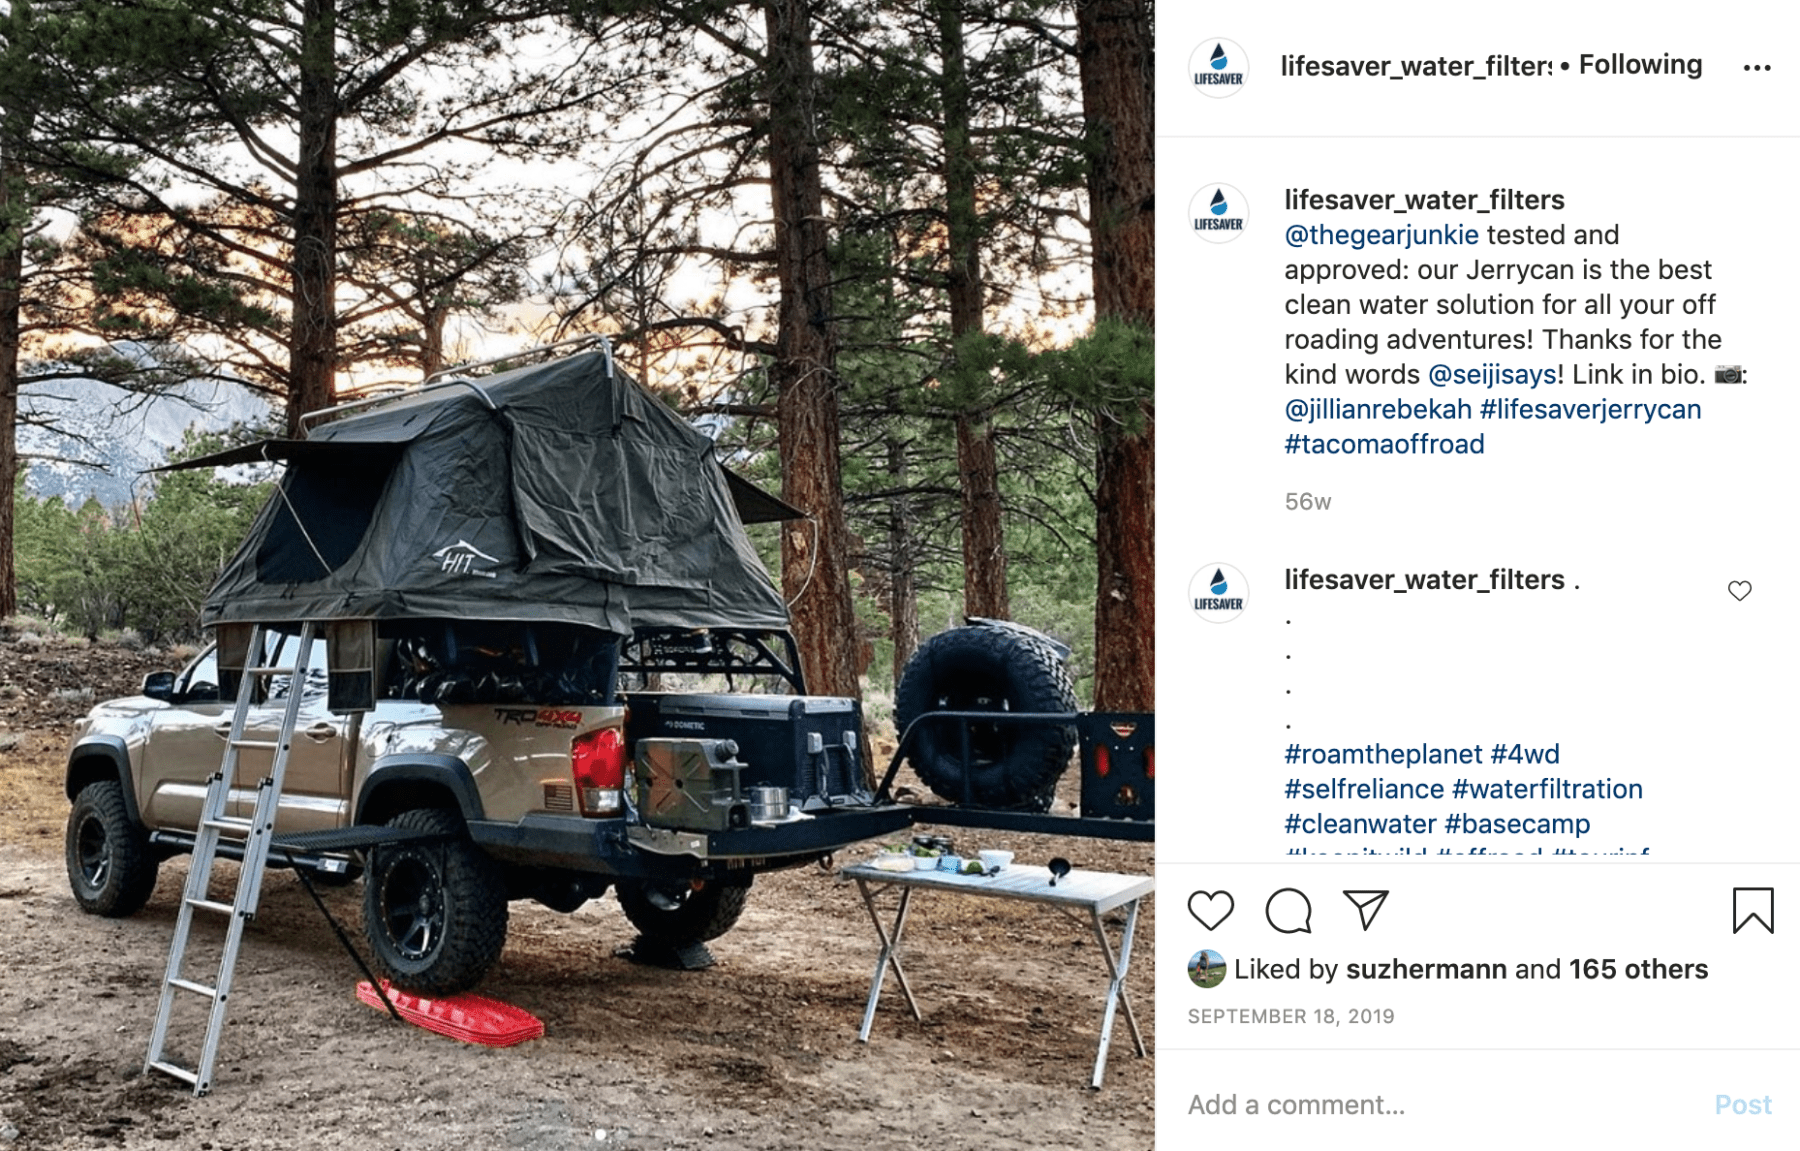 LifeSaver shares a GearJunkie hit about their Jerrycan in an Instagram post, making the most of their media relations strategy.